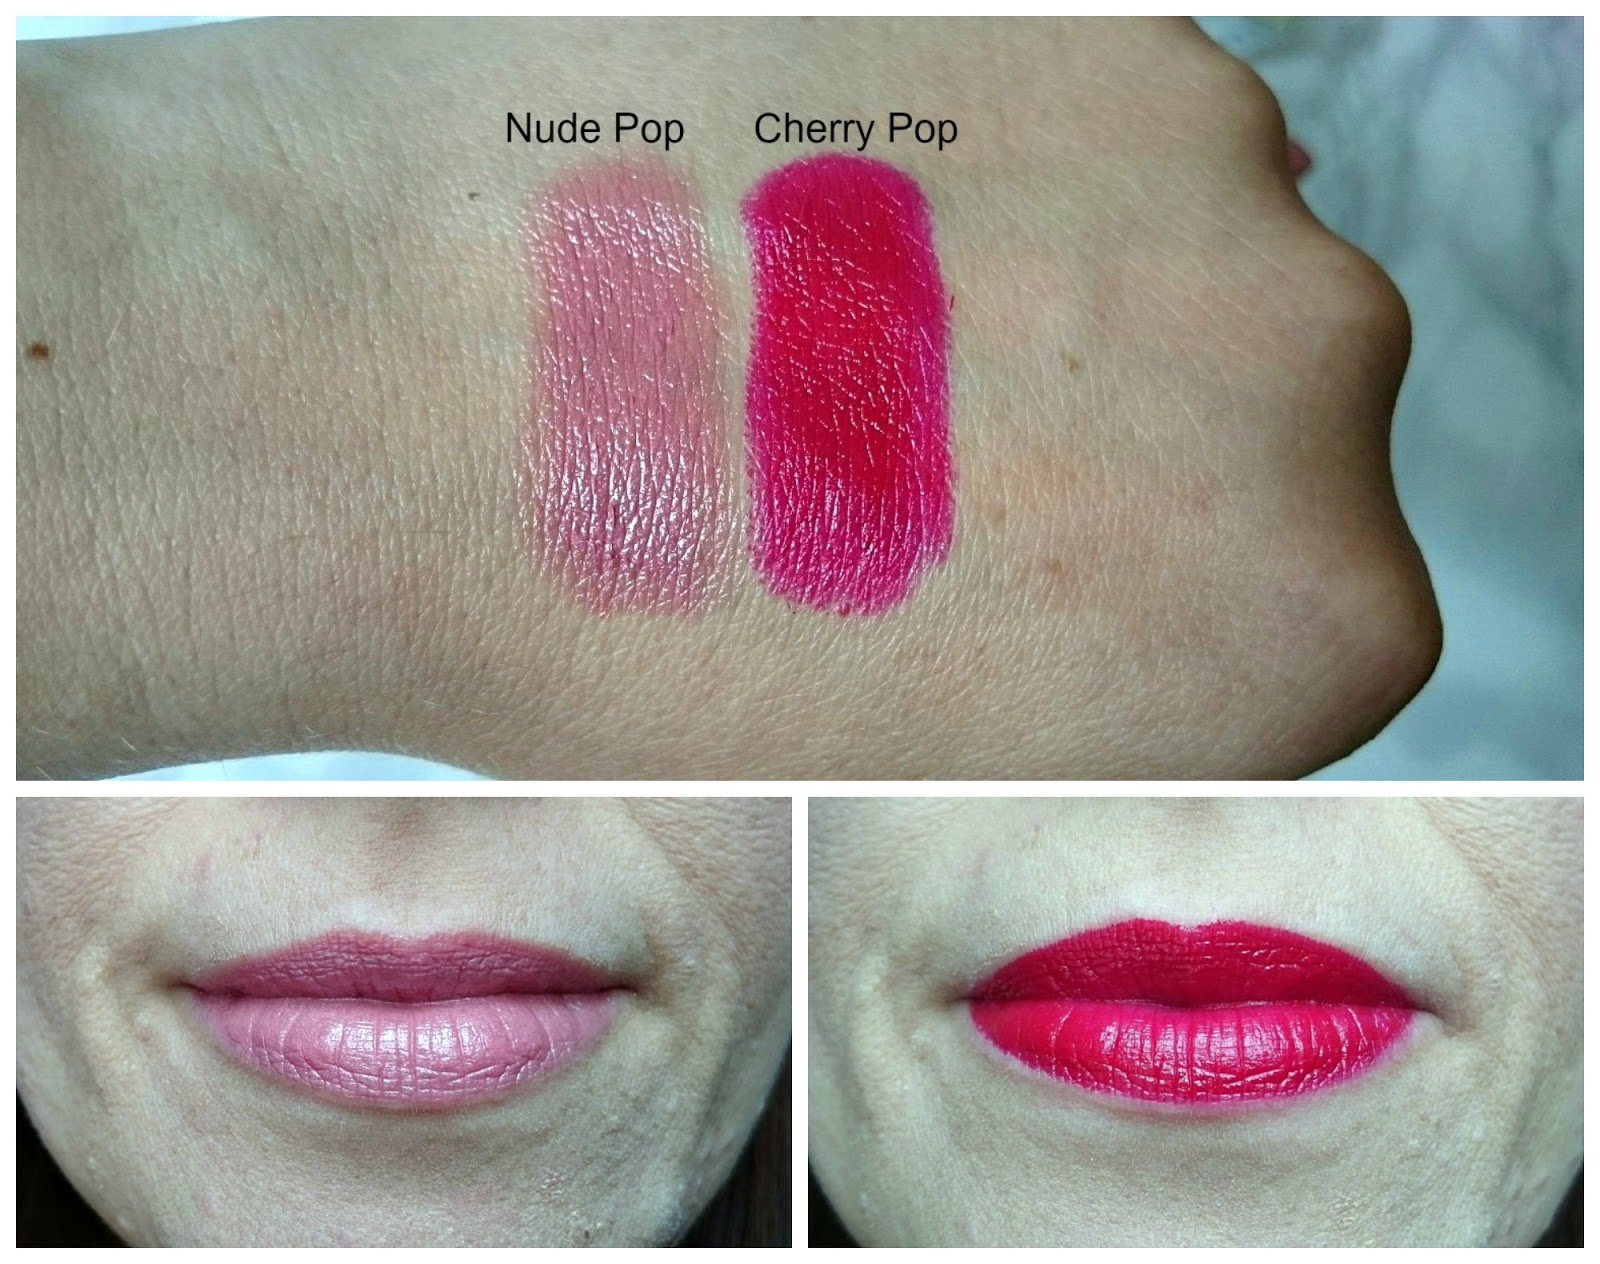 Clinique Pop Lip Colour in Nude Pop and Cherry Pop swatches